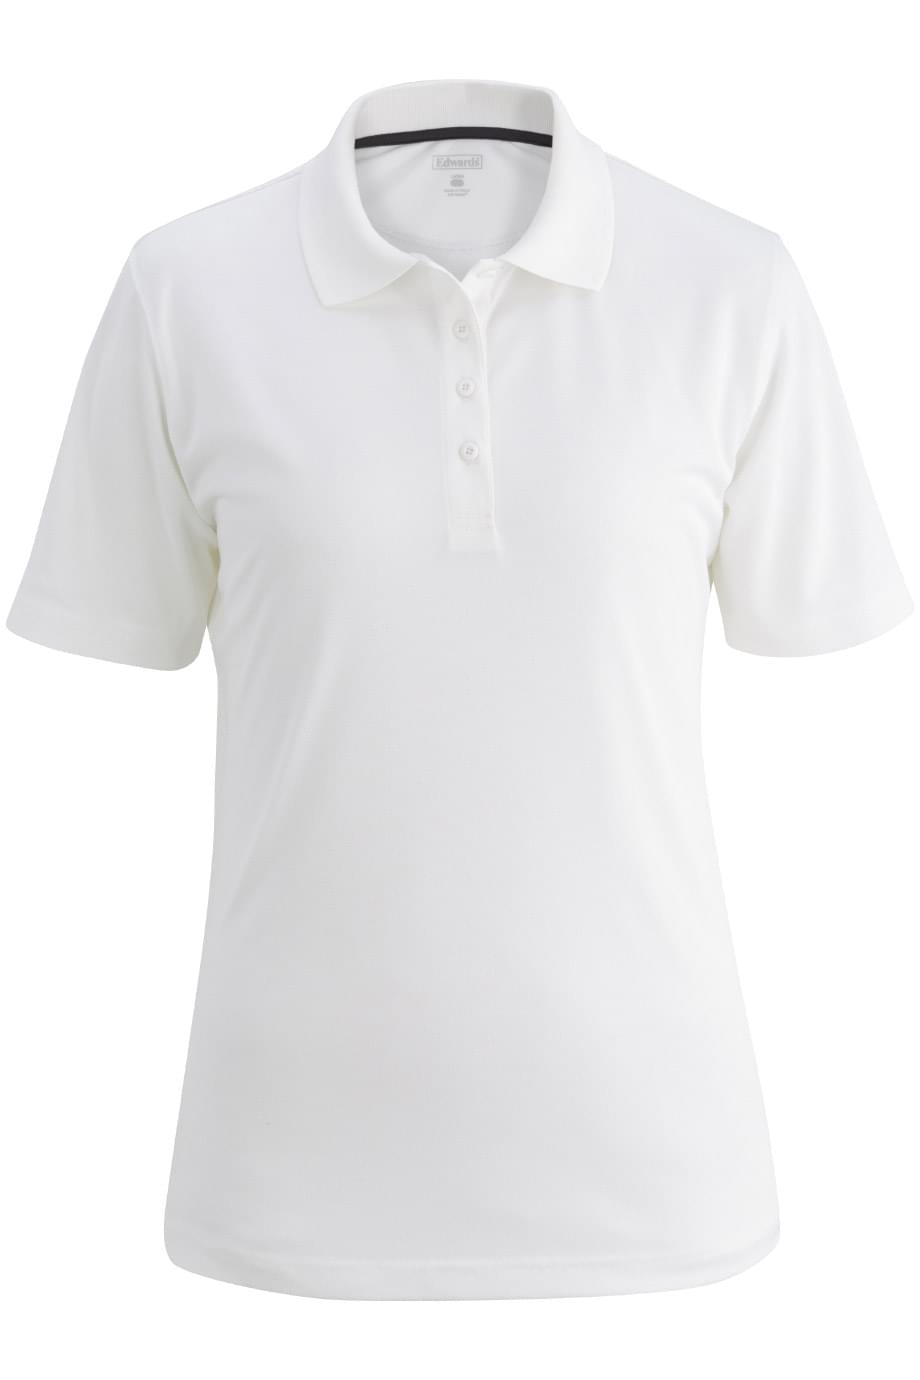 AIRGRID SNAG-PROOF MESH POLO